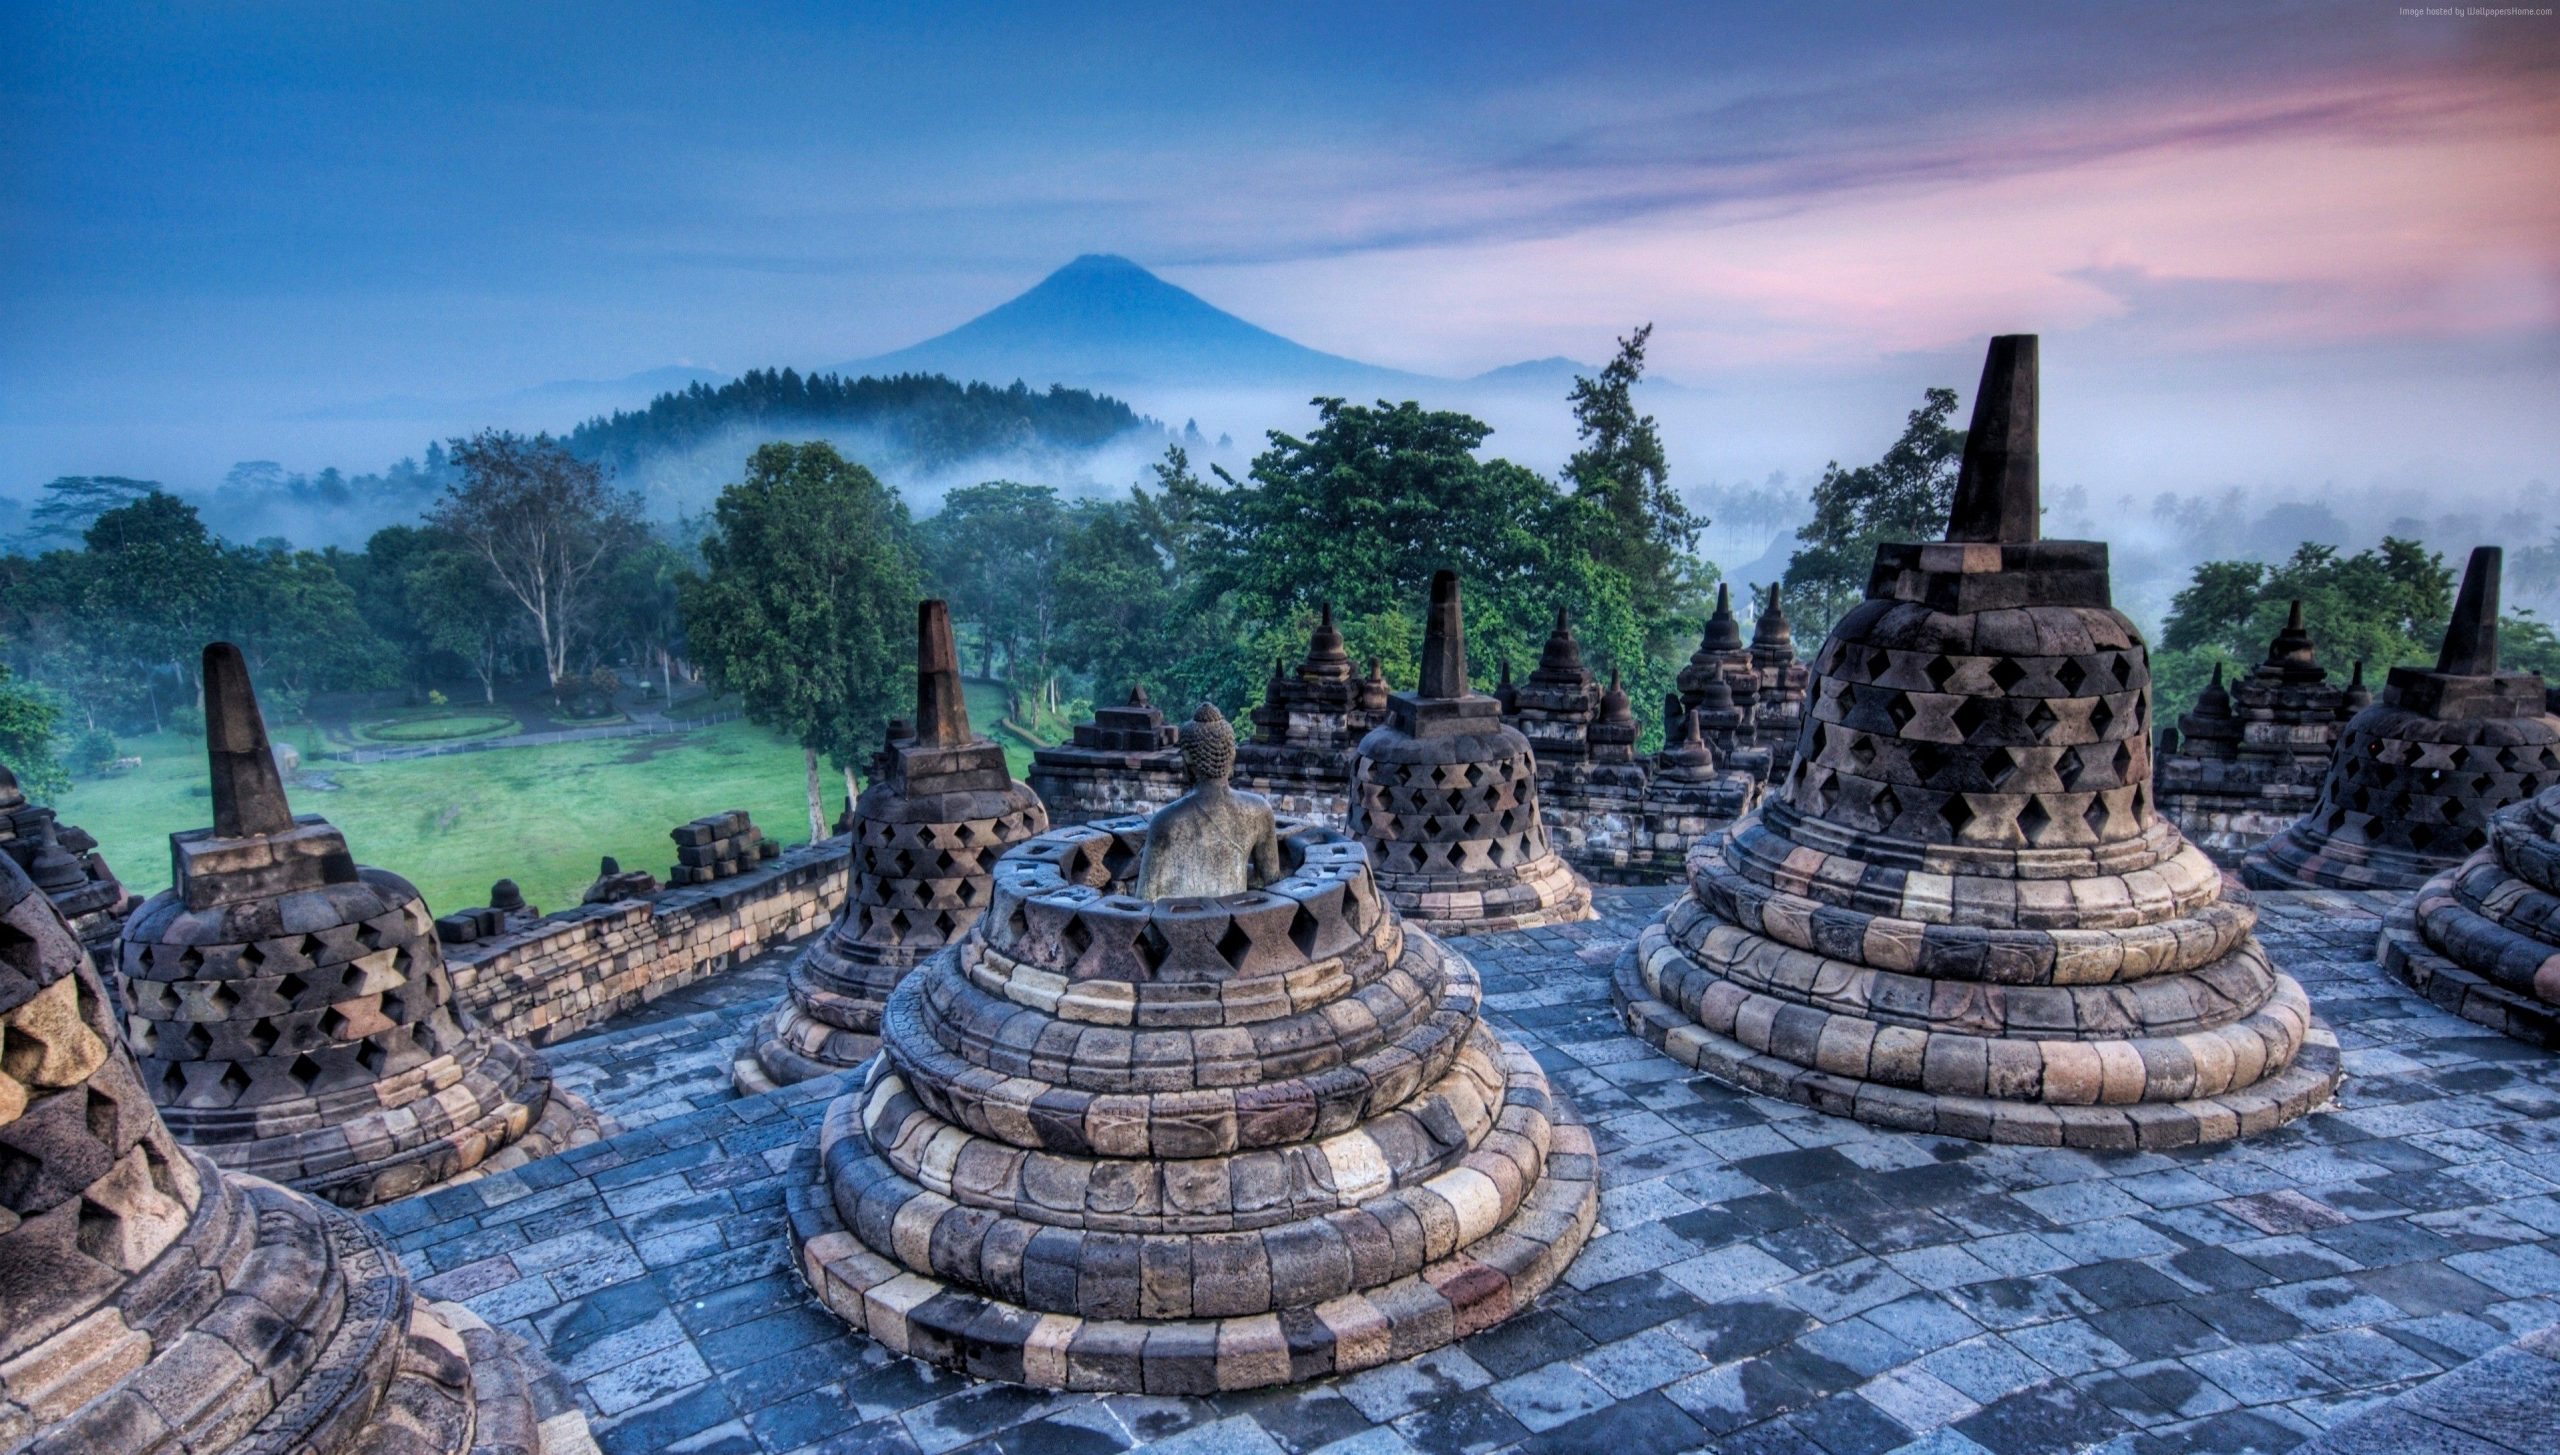 Why Should You Localize Your Content in the Indonesian Market?